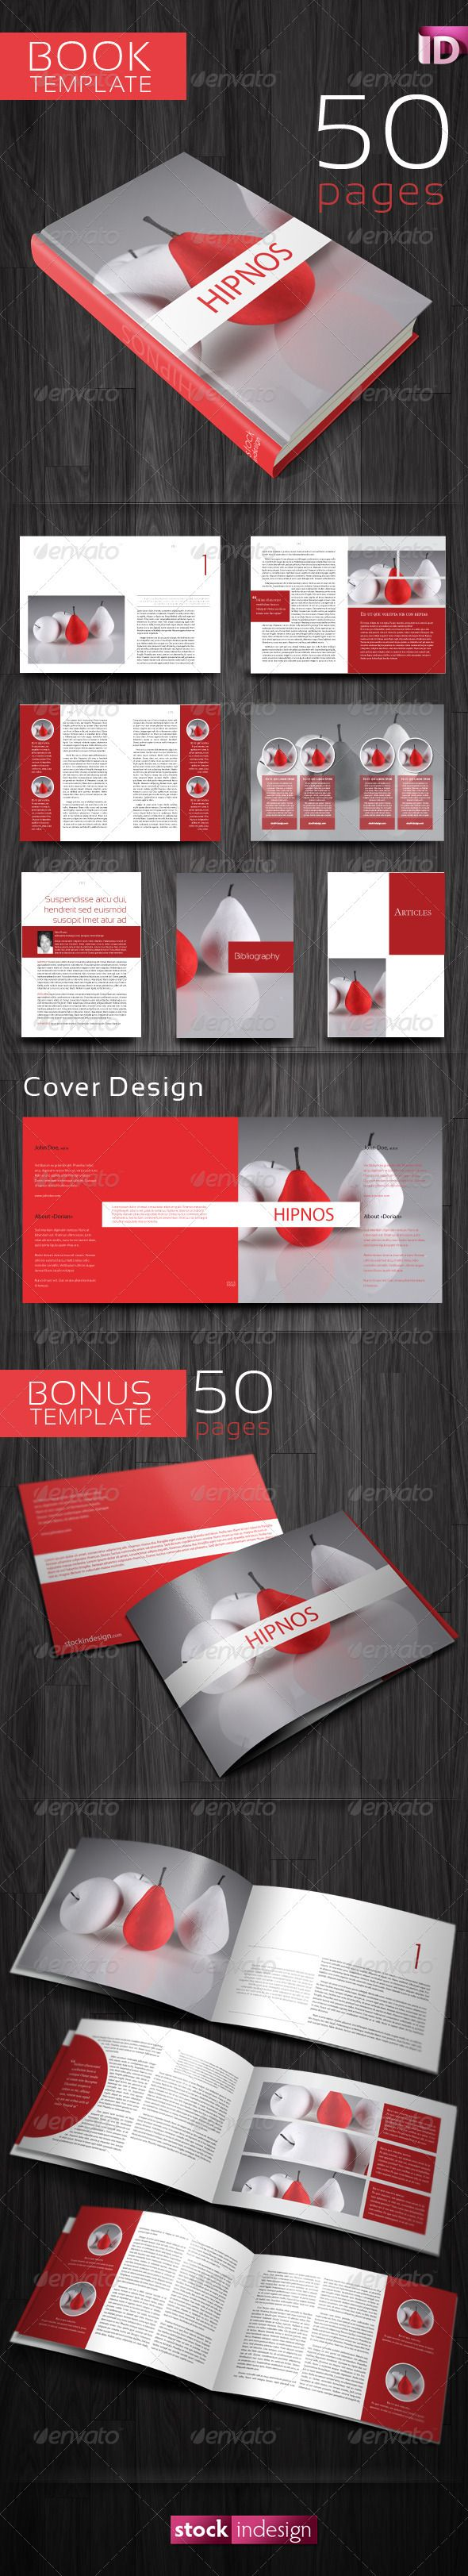 Hipnos: InDesign Book Templates